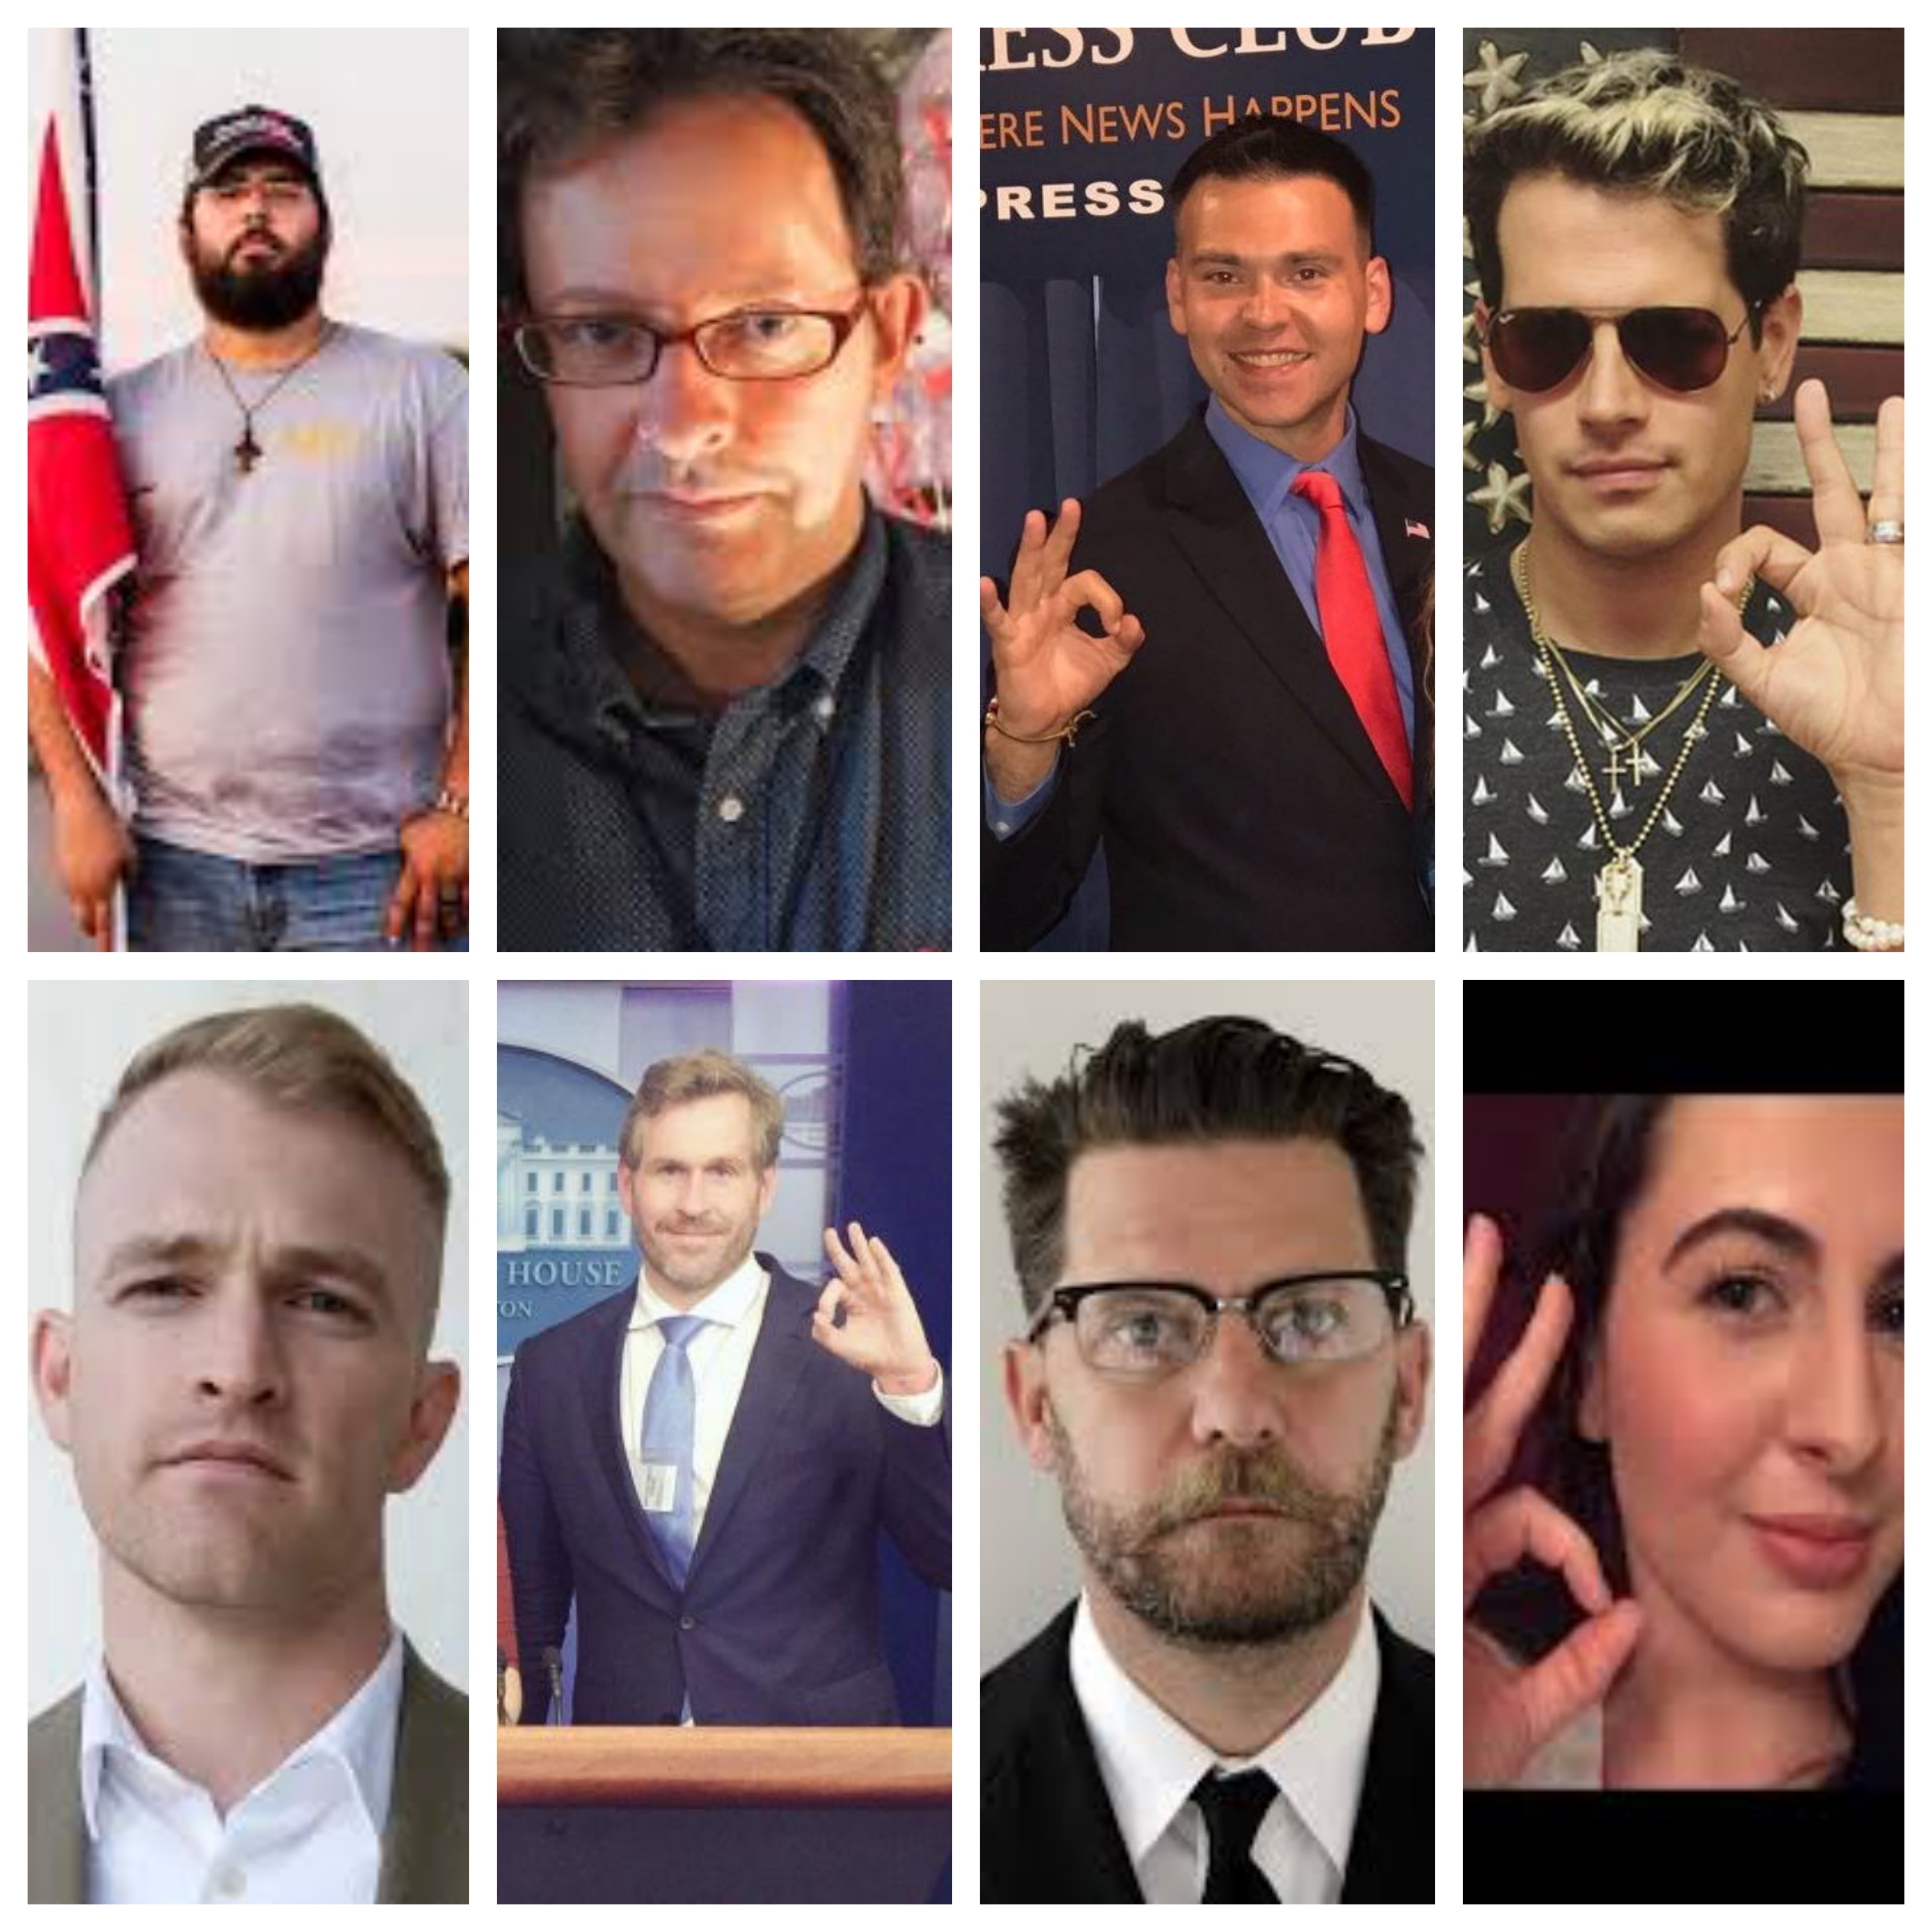 alt right racists